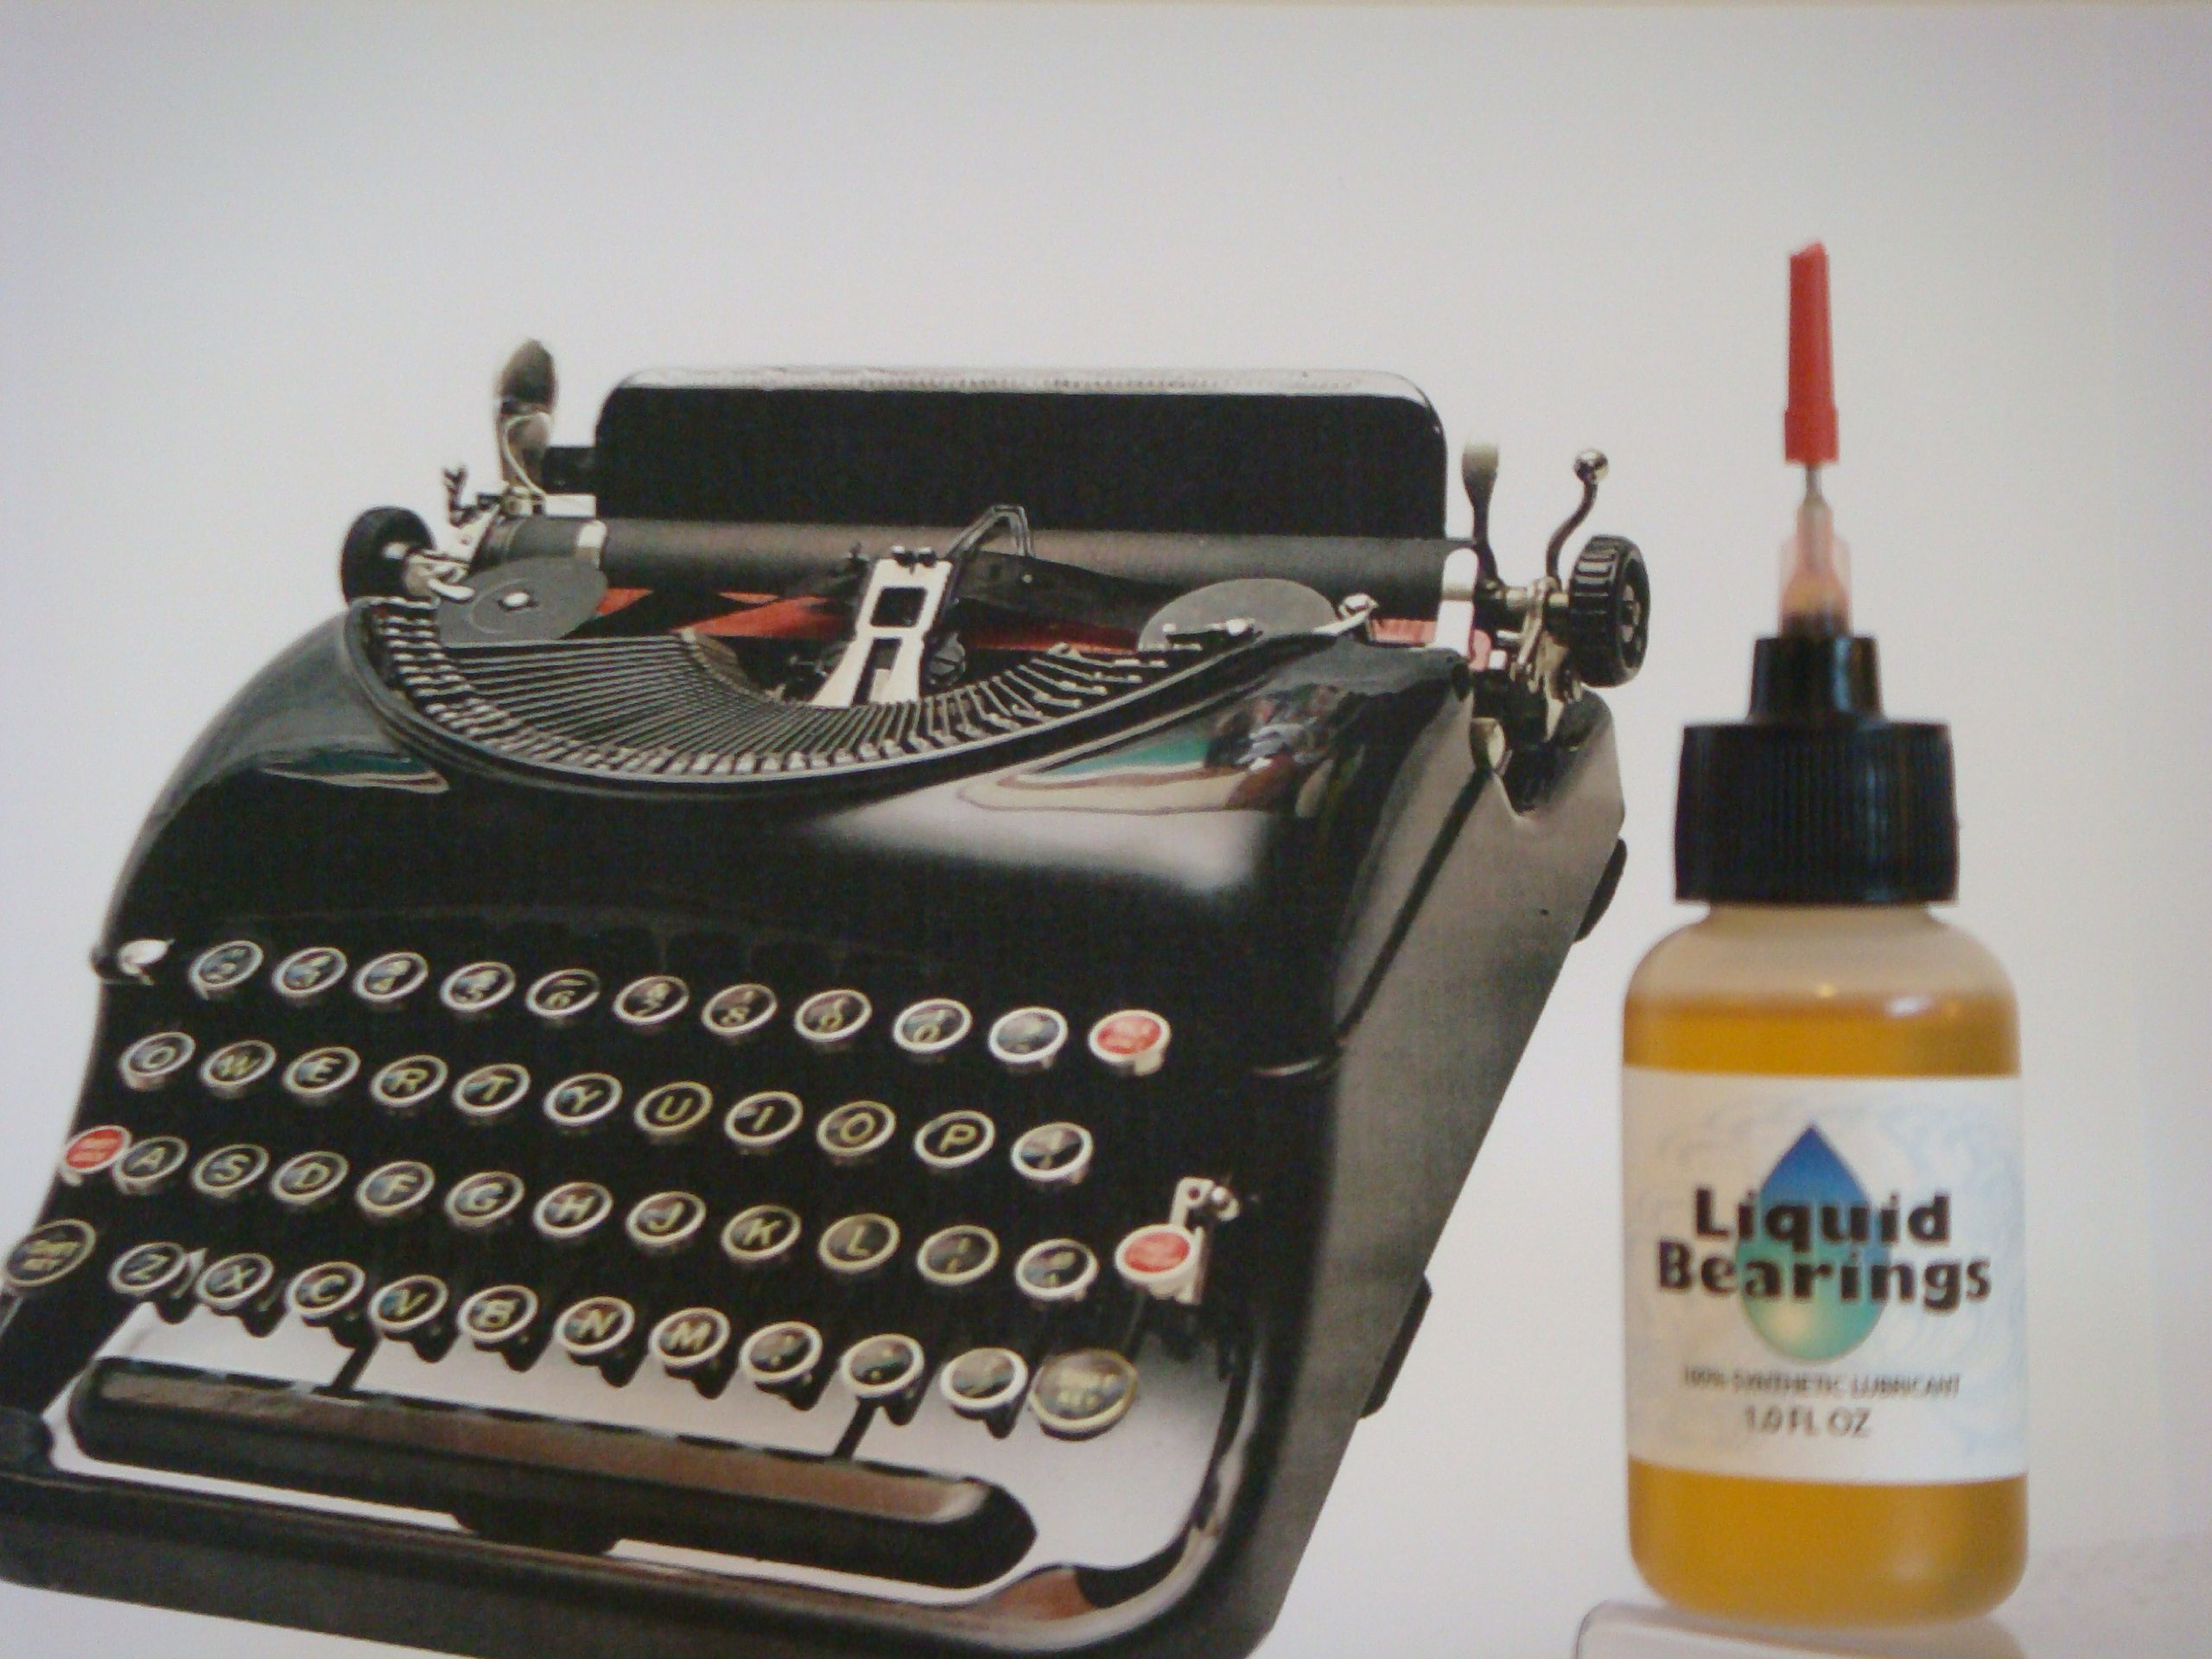 ULTIMATE 100%-synthetic oil for any typewriter, restores sticky keys, makes typewriters